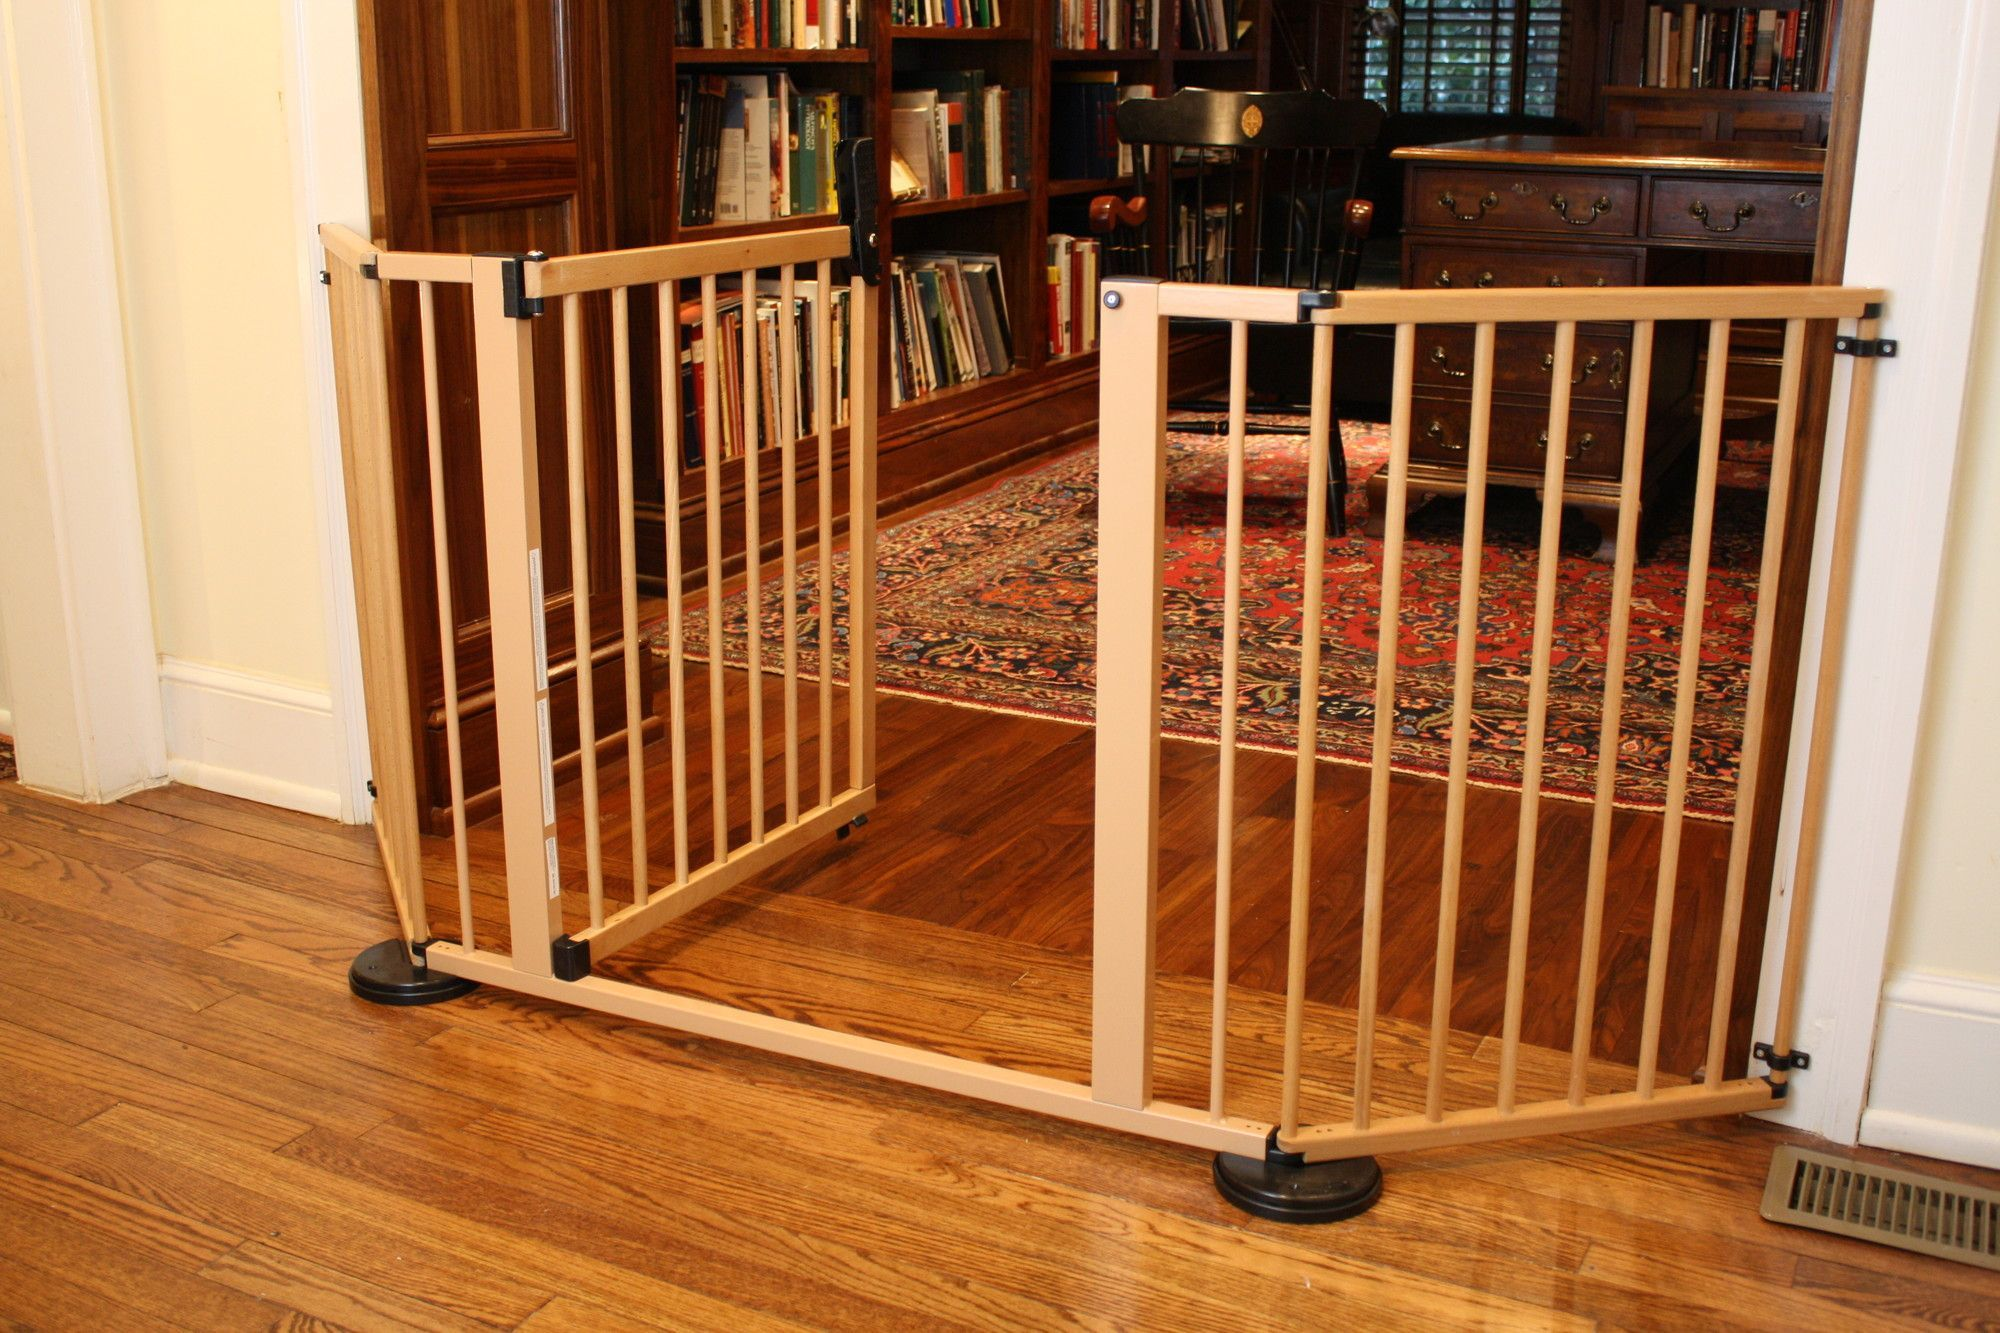 Versa Gate Baby gate for stairs, Baby gates, Stair gate